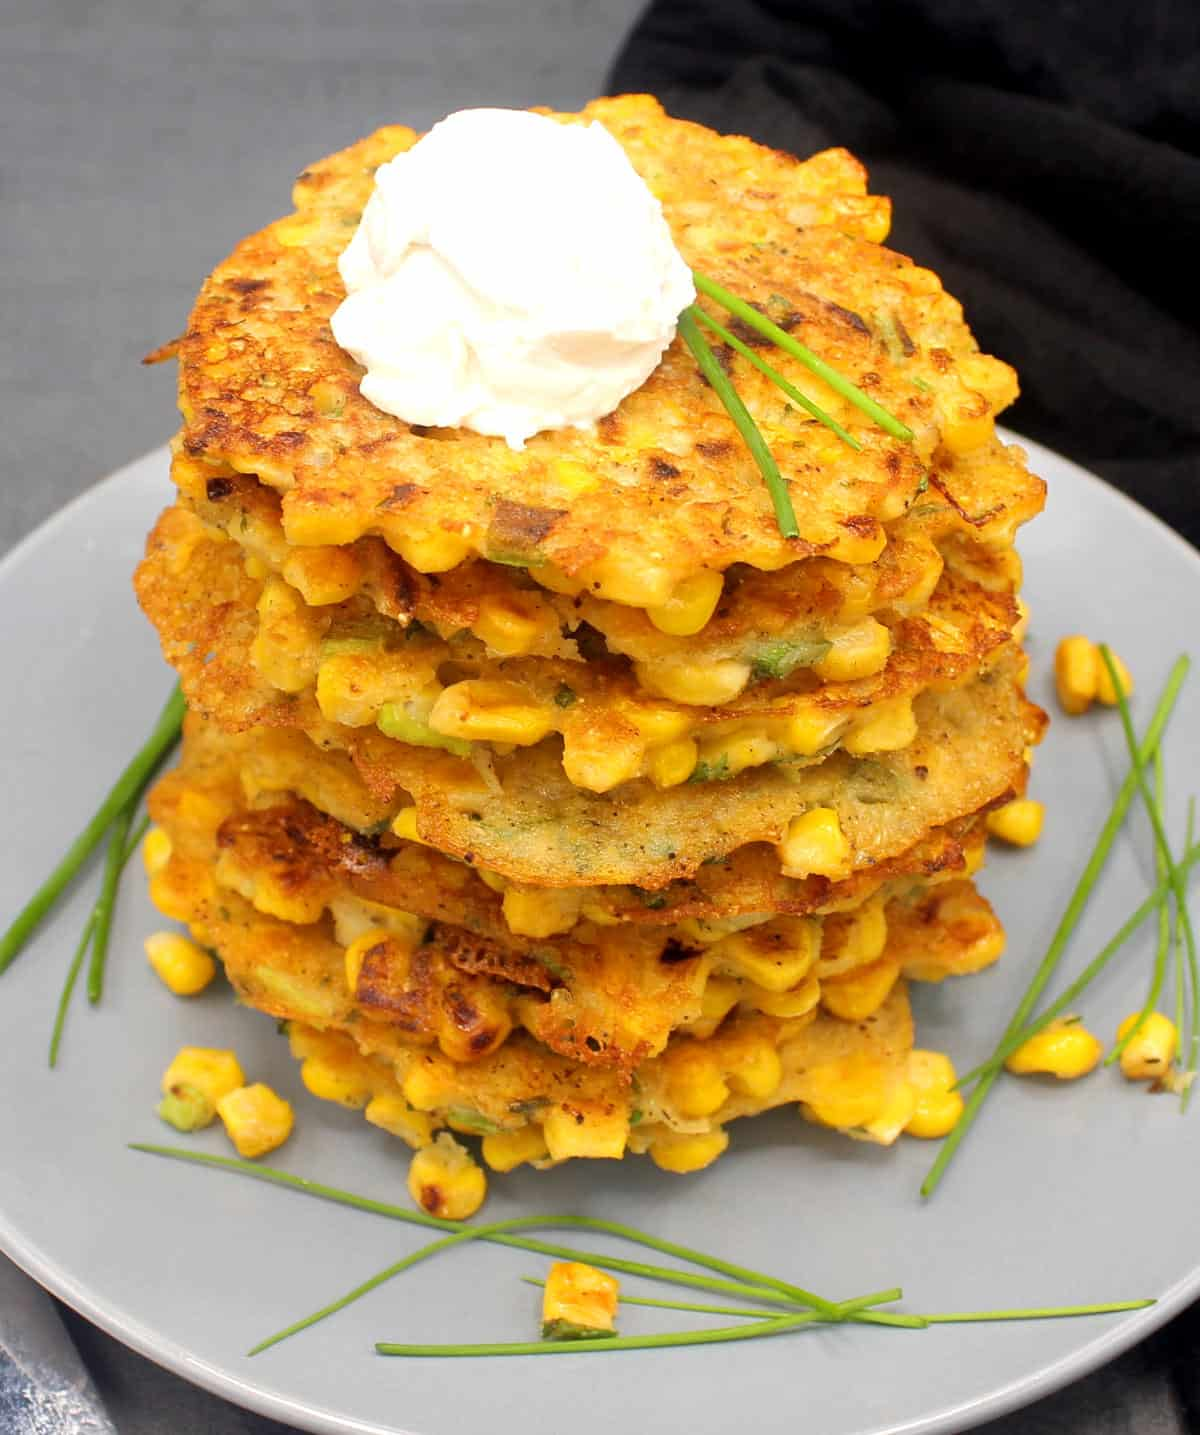 Photo of a stack of vegan corn fritters on a gray plate with vegan cream cheese and chives